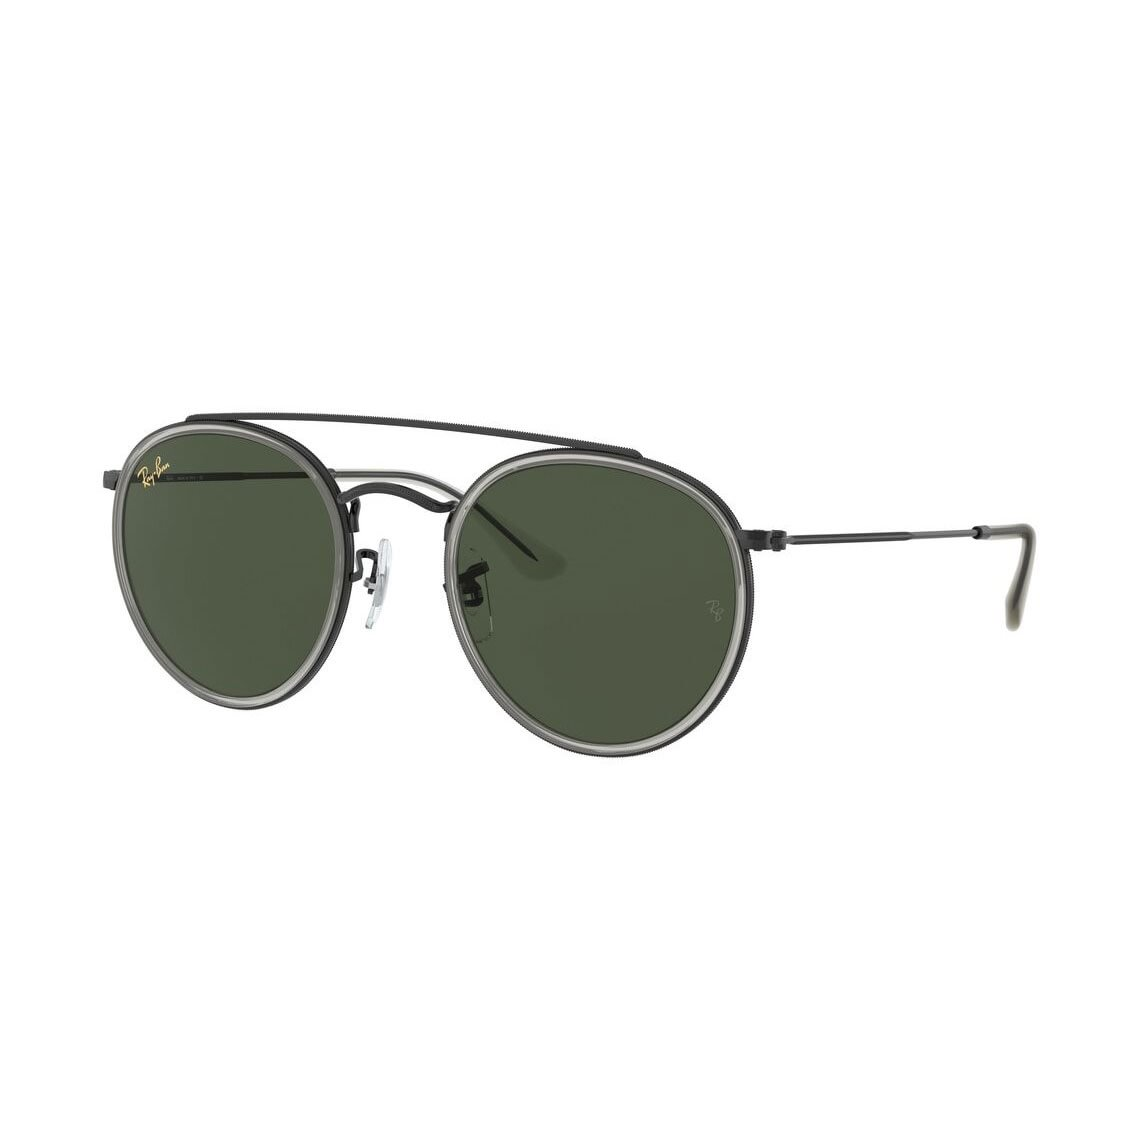 Ray-Ban Round Double Bridge Legend Gold RB3647N 921231 5122